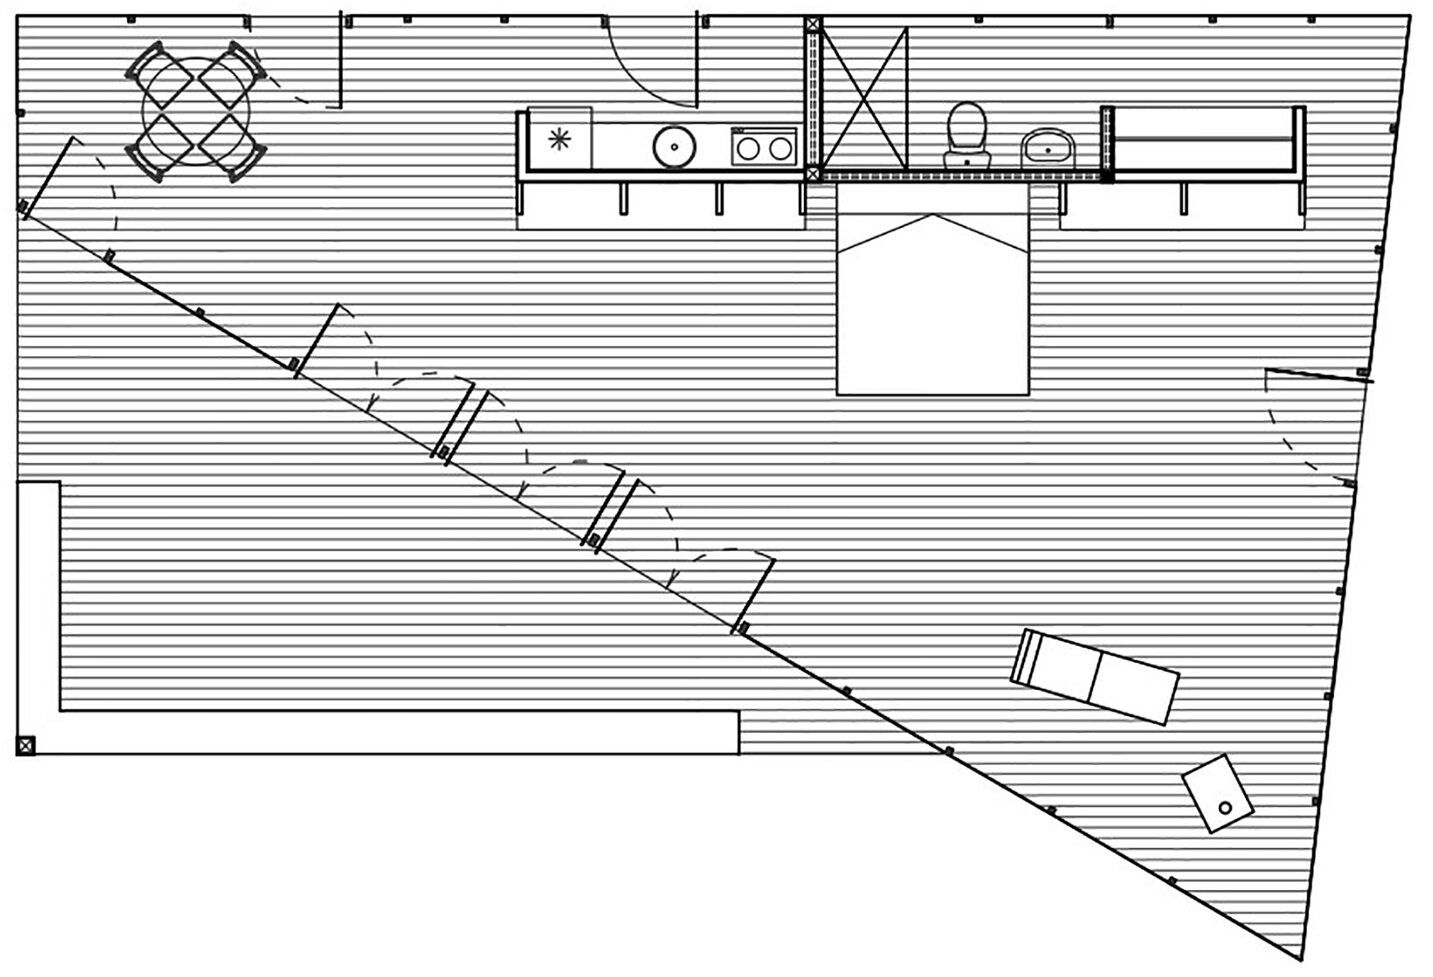 Pigeon Loft - Schmidt Arquitectos Asociados - Chile - Floor Plan - Humble Homes